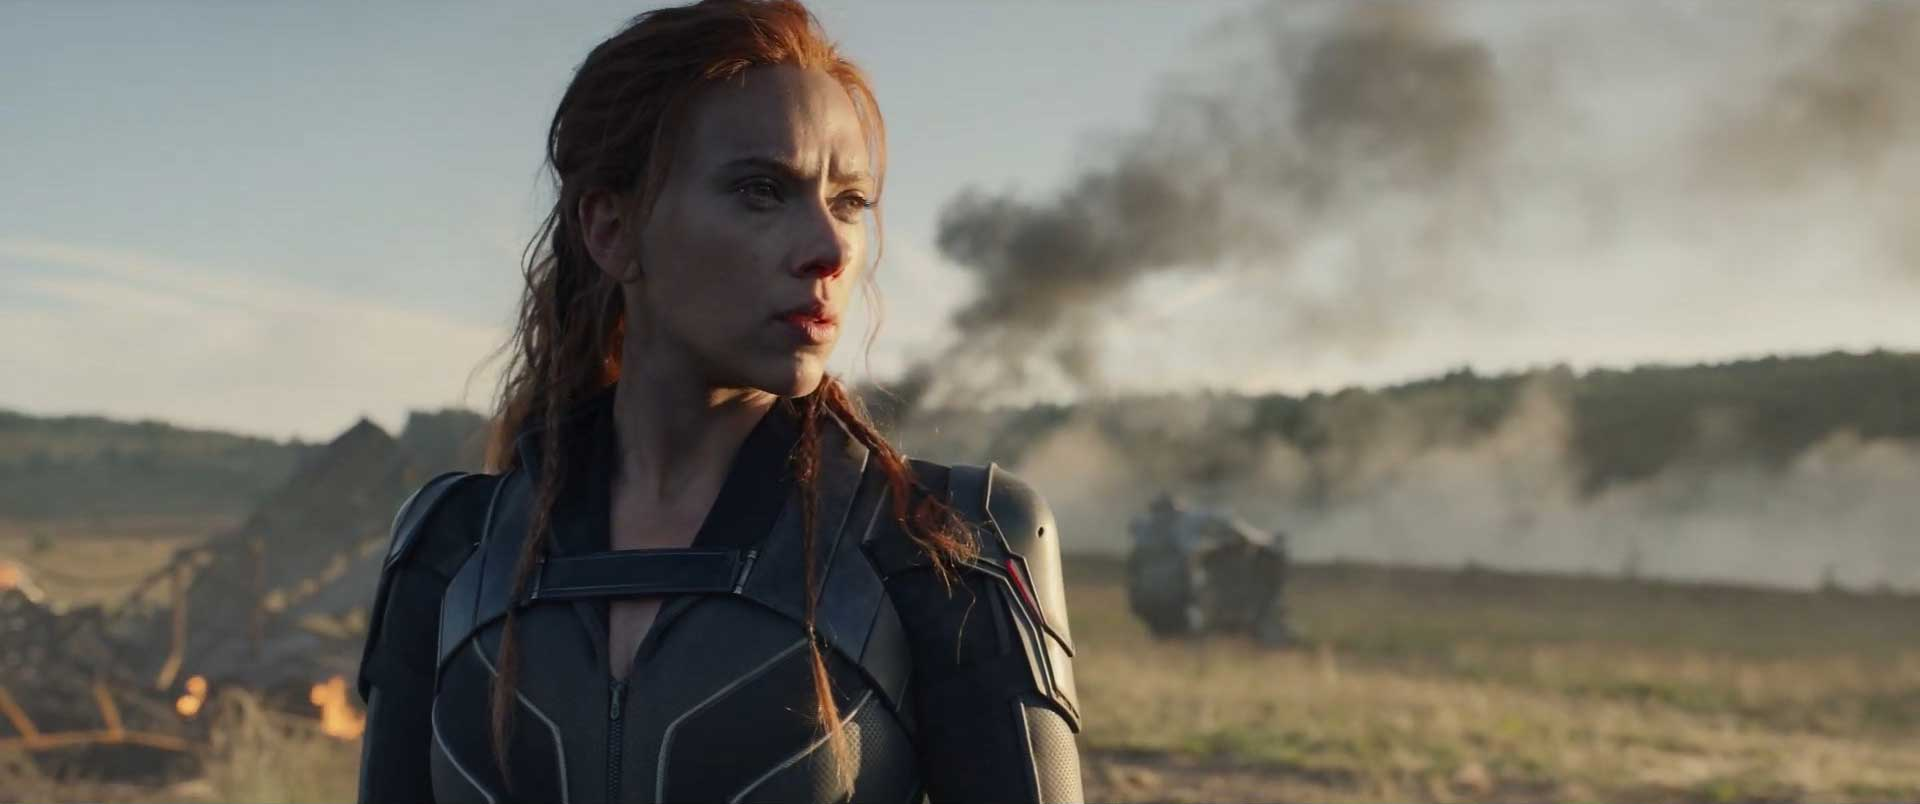 Black Widow Teaser Trailer Breakdown - Costume